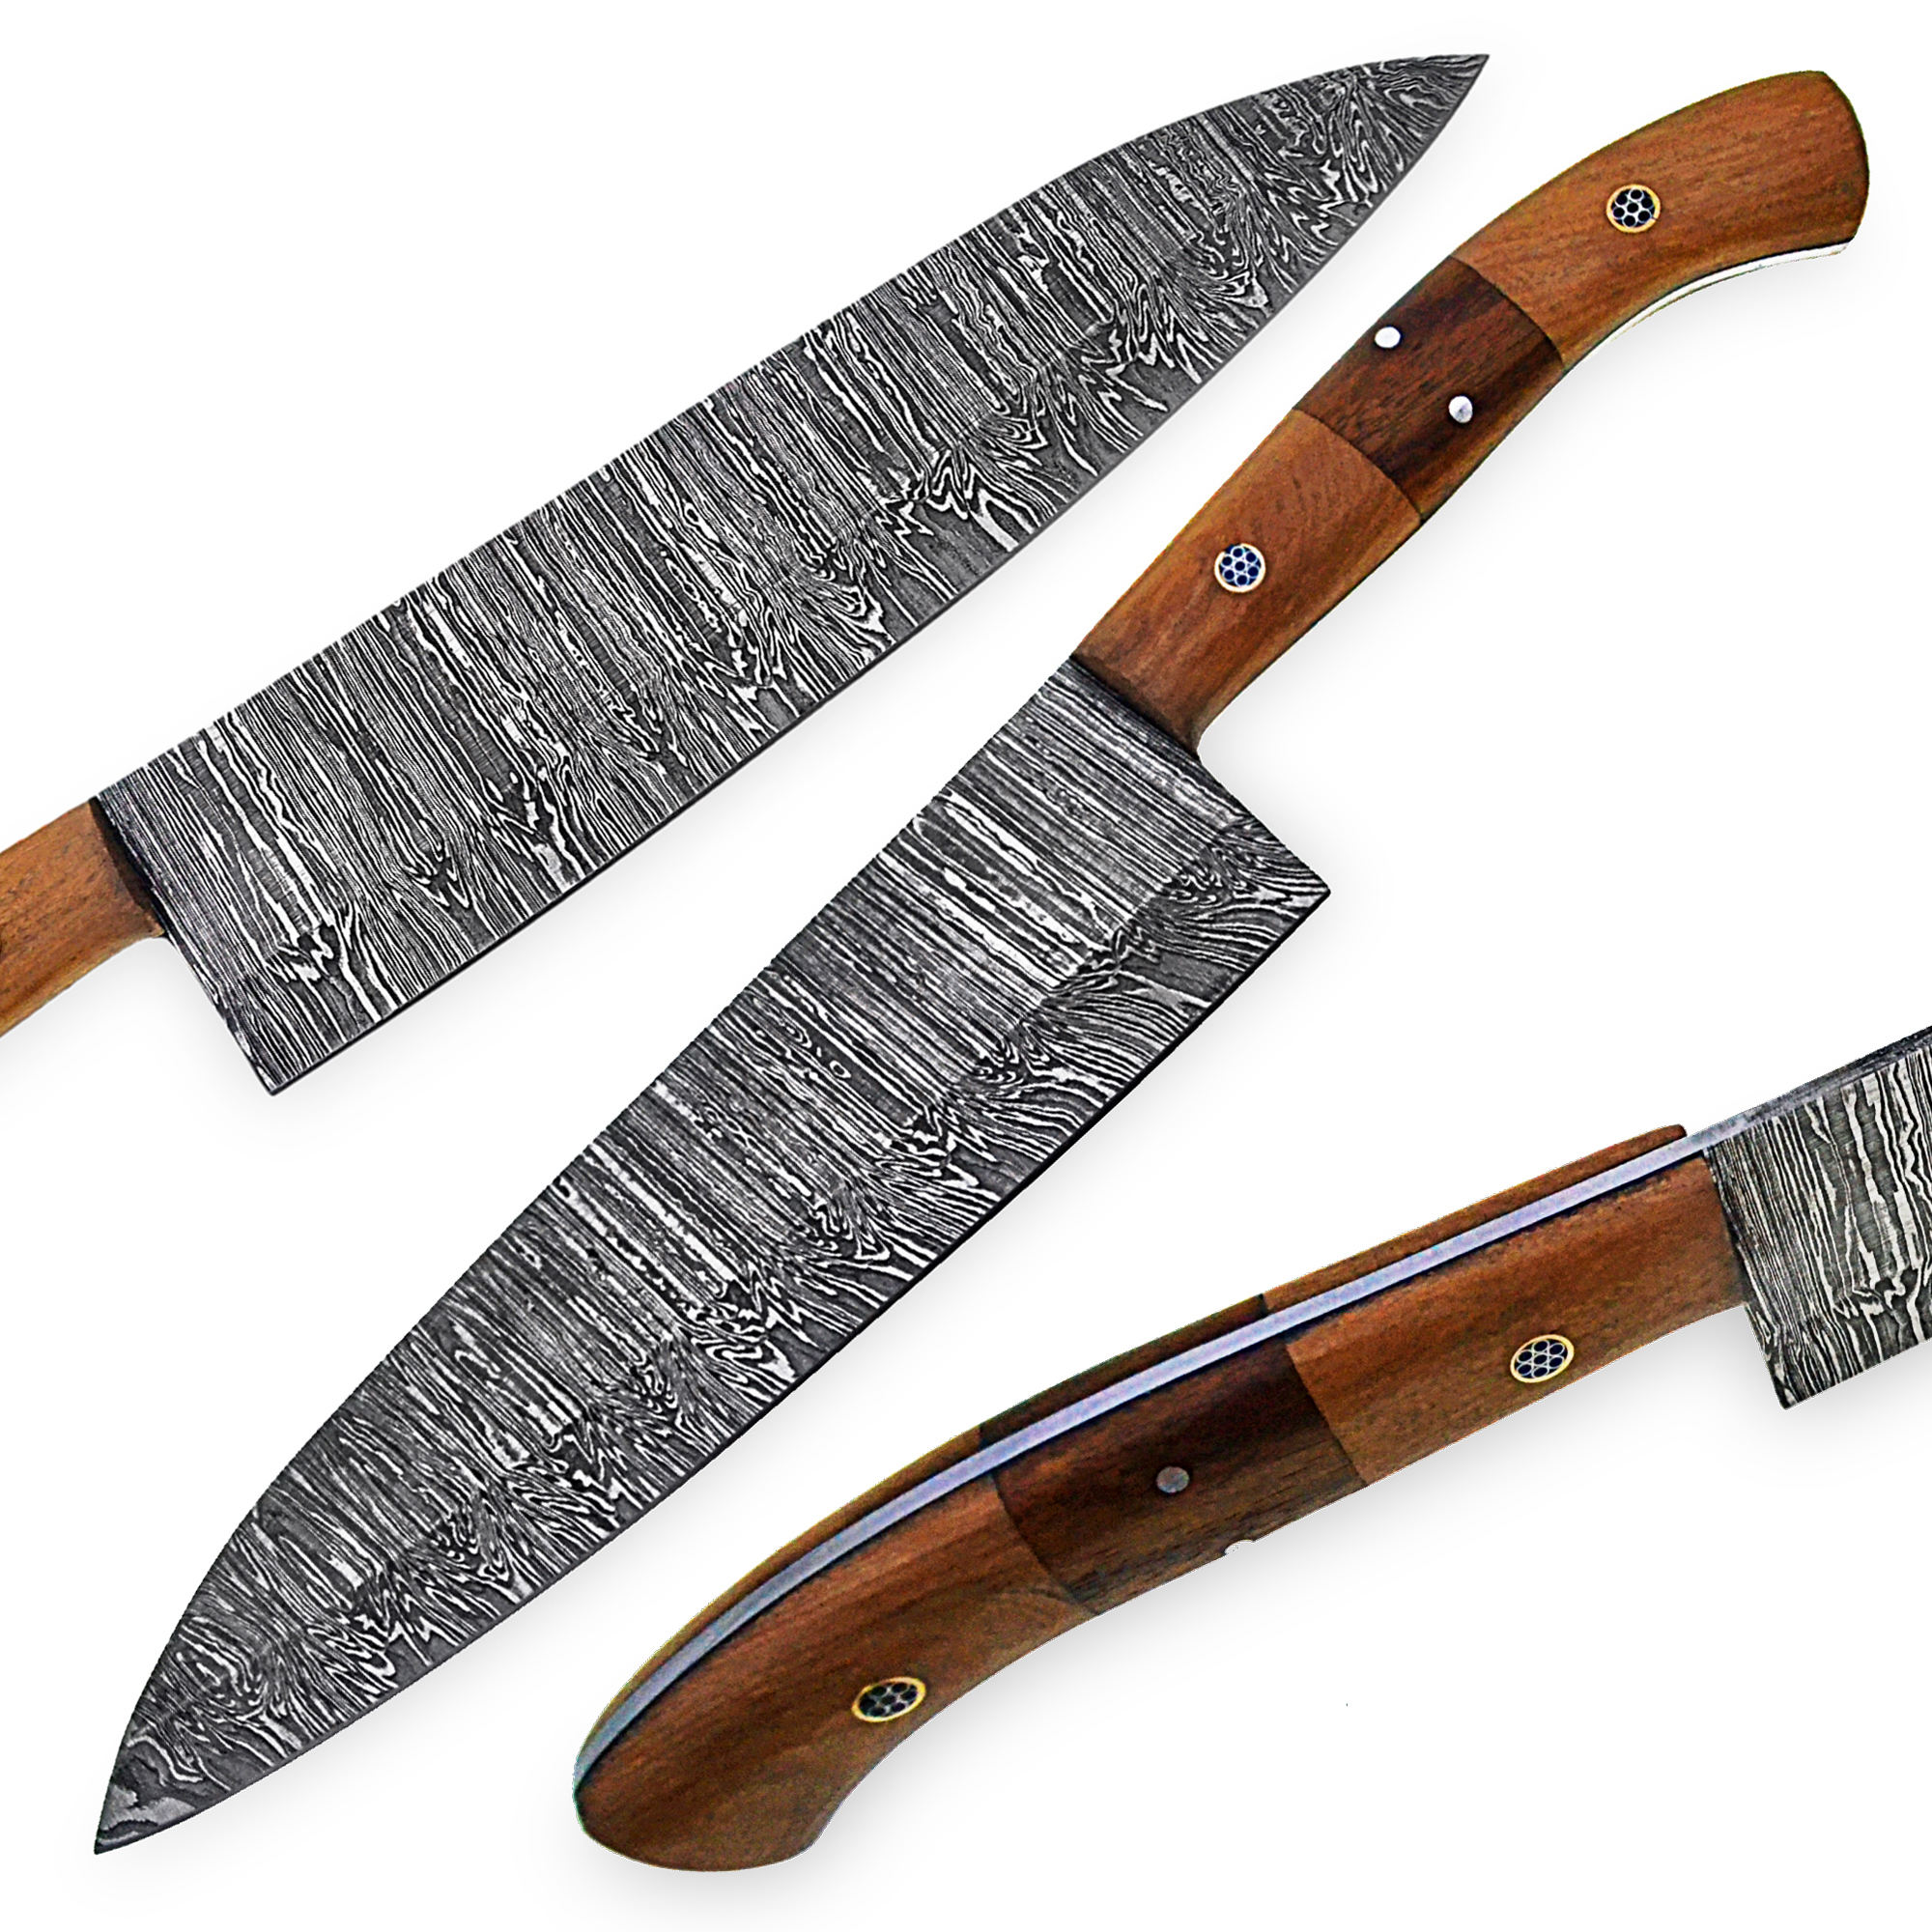 Custom Handmade Damascus Knives- 13 inches Damascus Steel Chef Knife